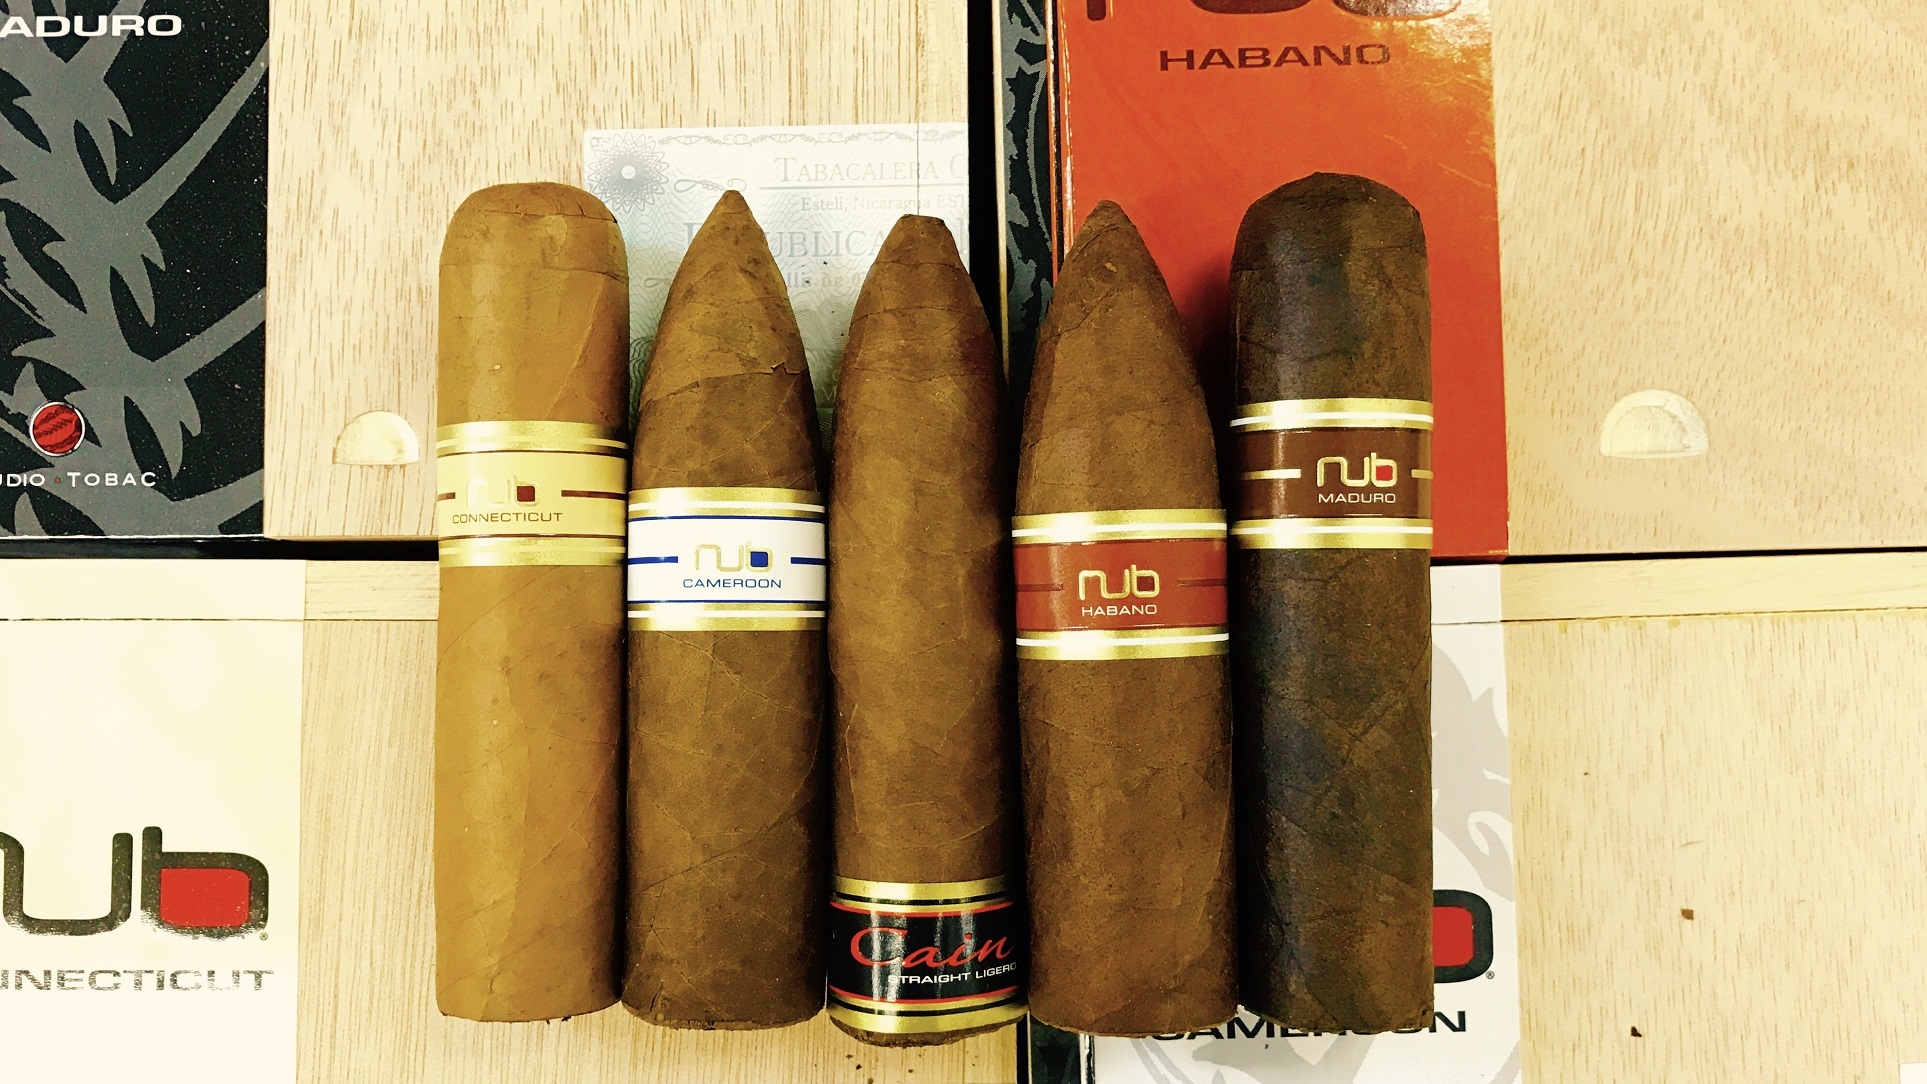 nub cigars worldwide image